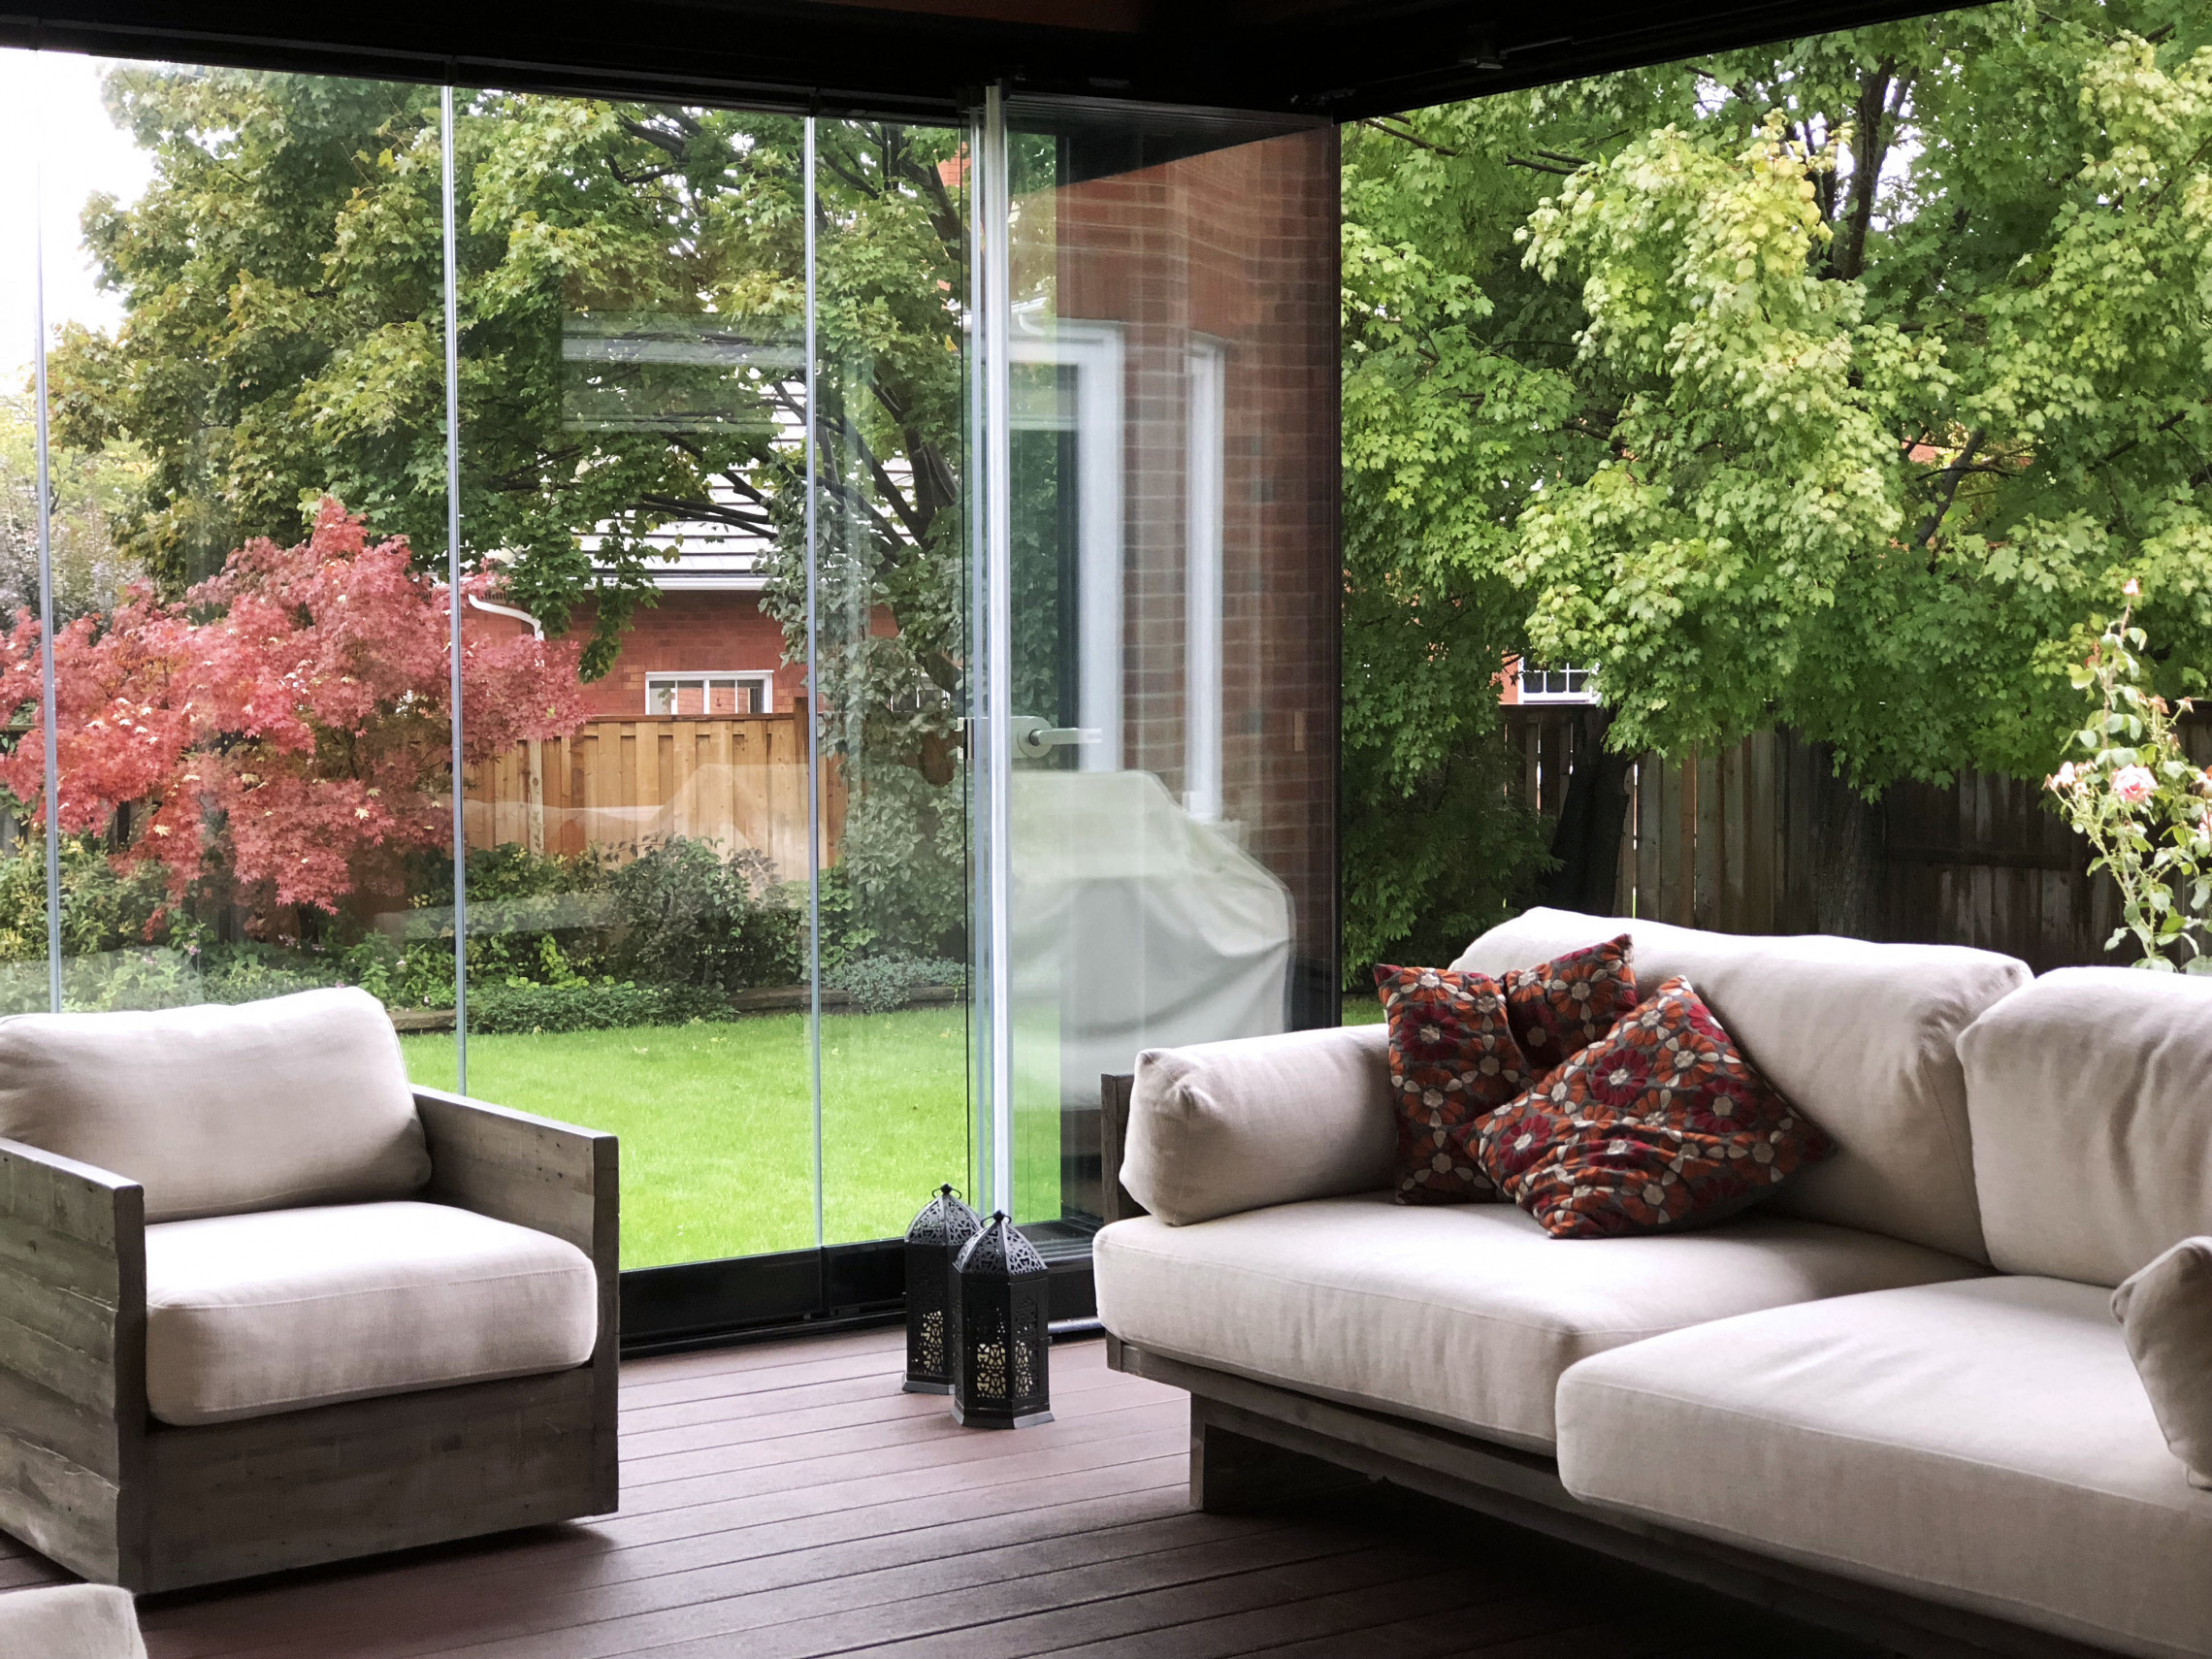 lumon canada, east gwilllimbury, retractable glass enclosure, sunroom ontario, sunroom vancouver, glass